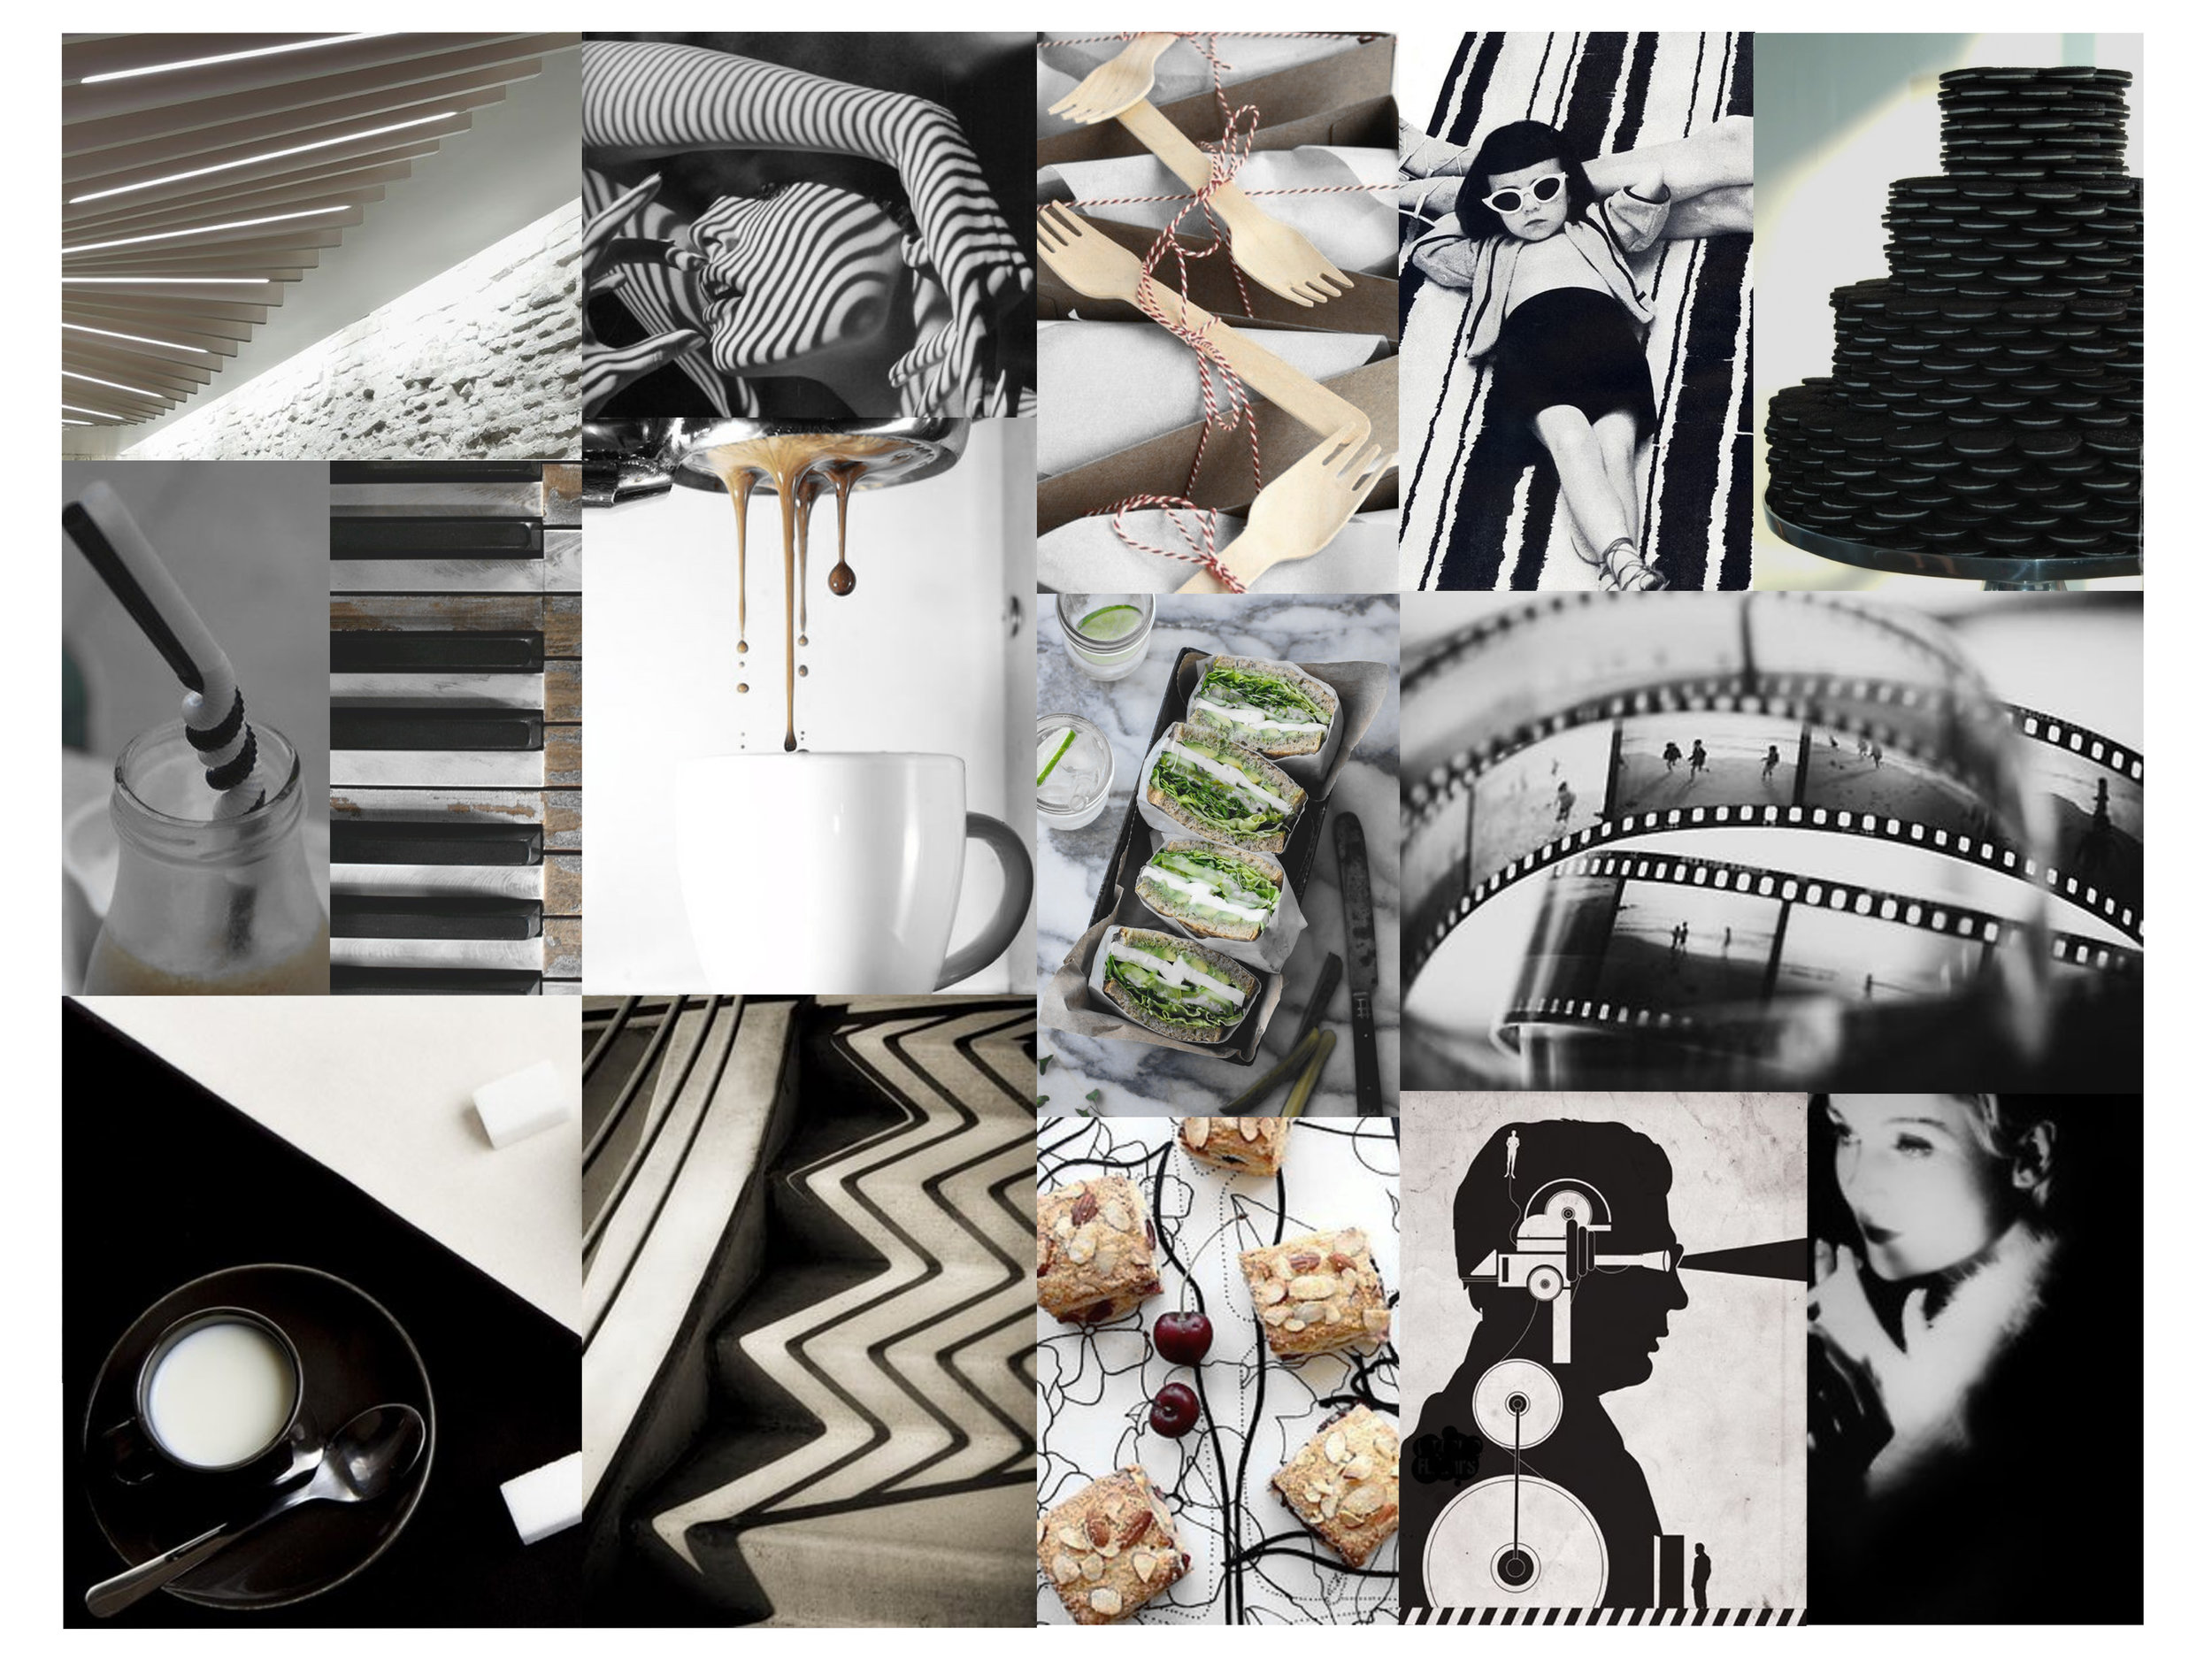 KIOSK CAFE - THE CAFE KIOSK IS MEANT TO CAPTURE THE SPIRIT OF BLACK AND WHITE FILM